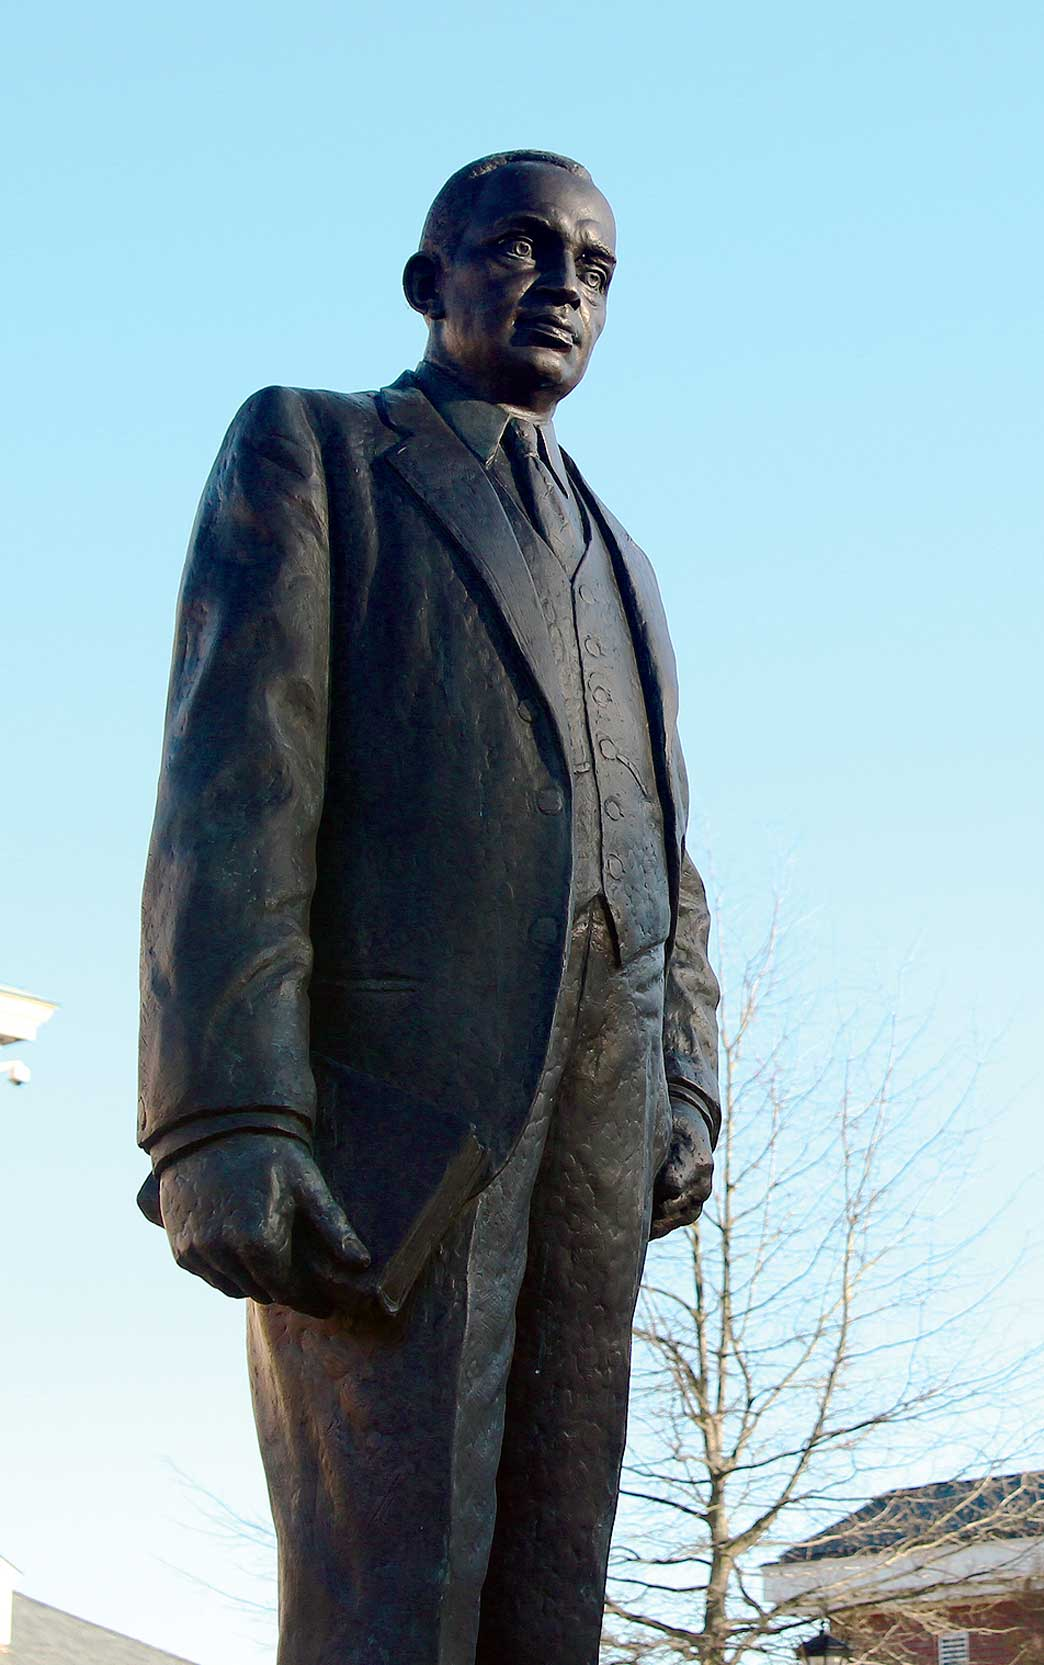 Outside the Hoey Administration Building James E. Shepard's statue keeps watch. Matt Phillips/Echo editor-in-chief